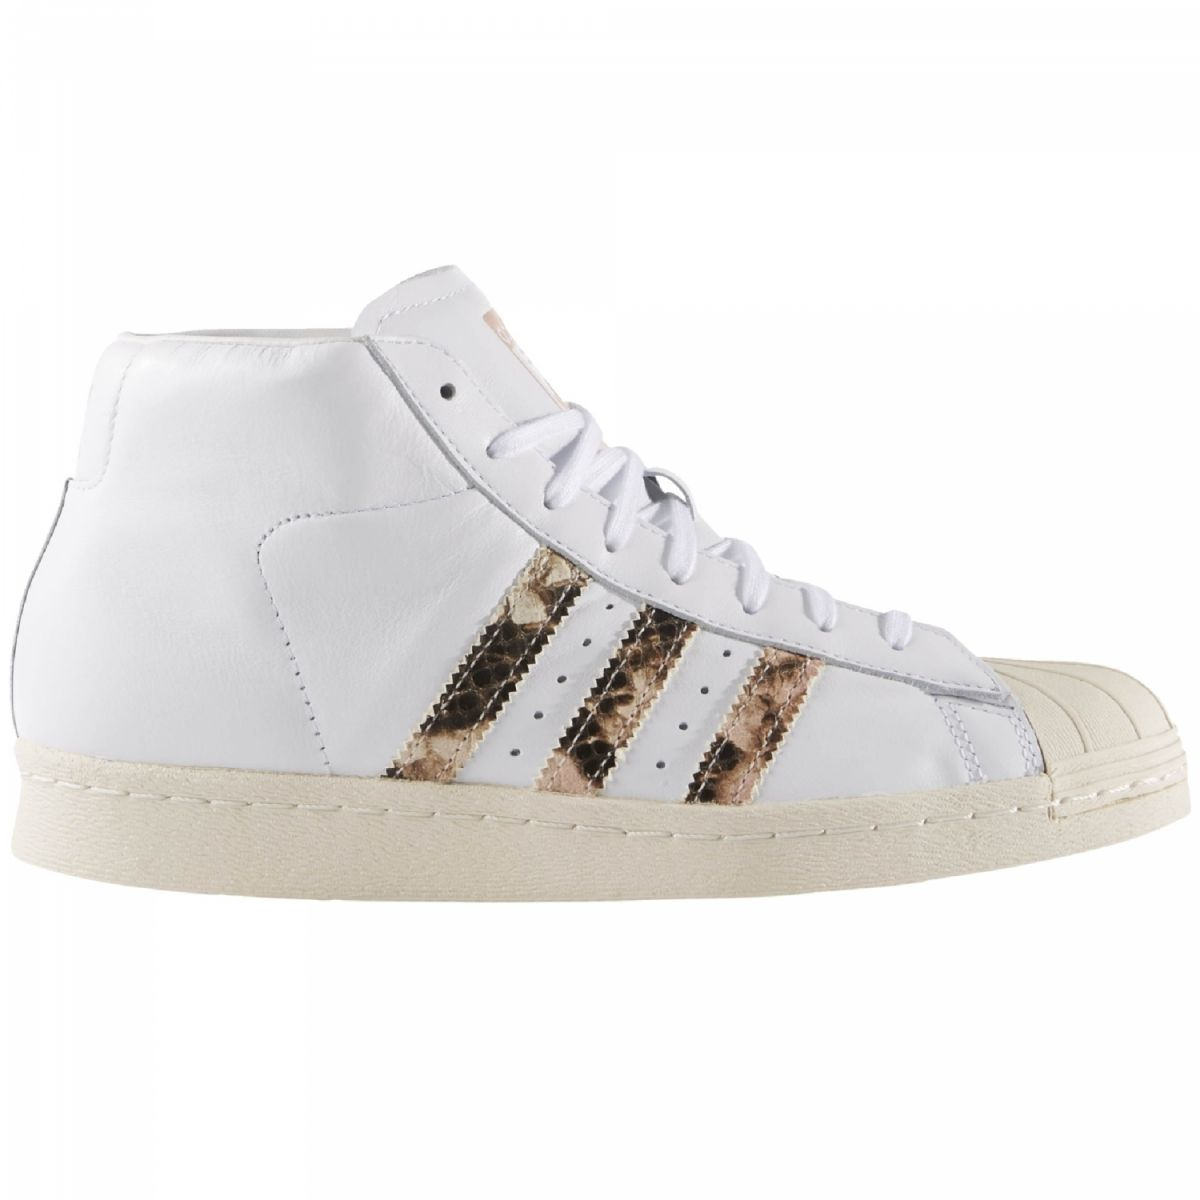 adidas originals promodel sneaker damen schuhe wei bb4946 sport klingenmaier. Black Bedroom Furniture Sets. Home Design Ideas